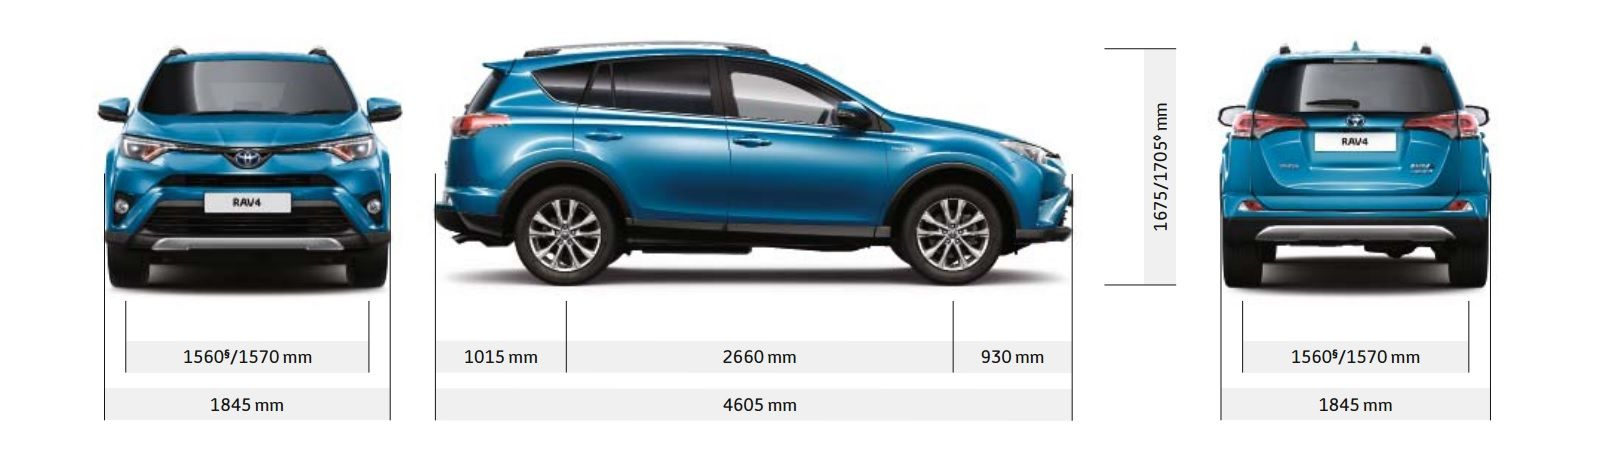 Kuga Dimensions >> Toyota Rav4 And Hybrid Sizes And Dimensions Guide Carwow